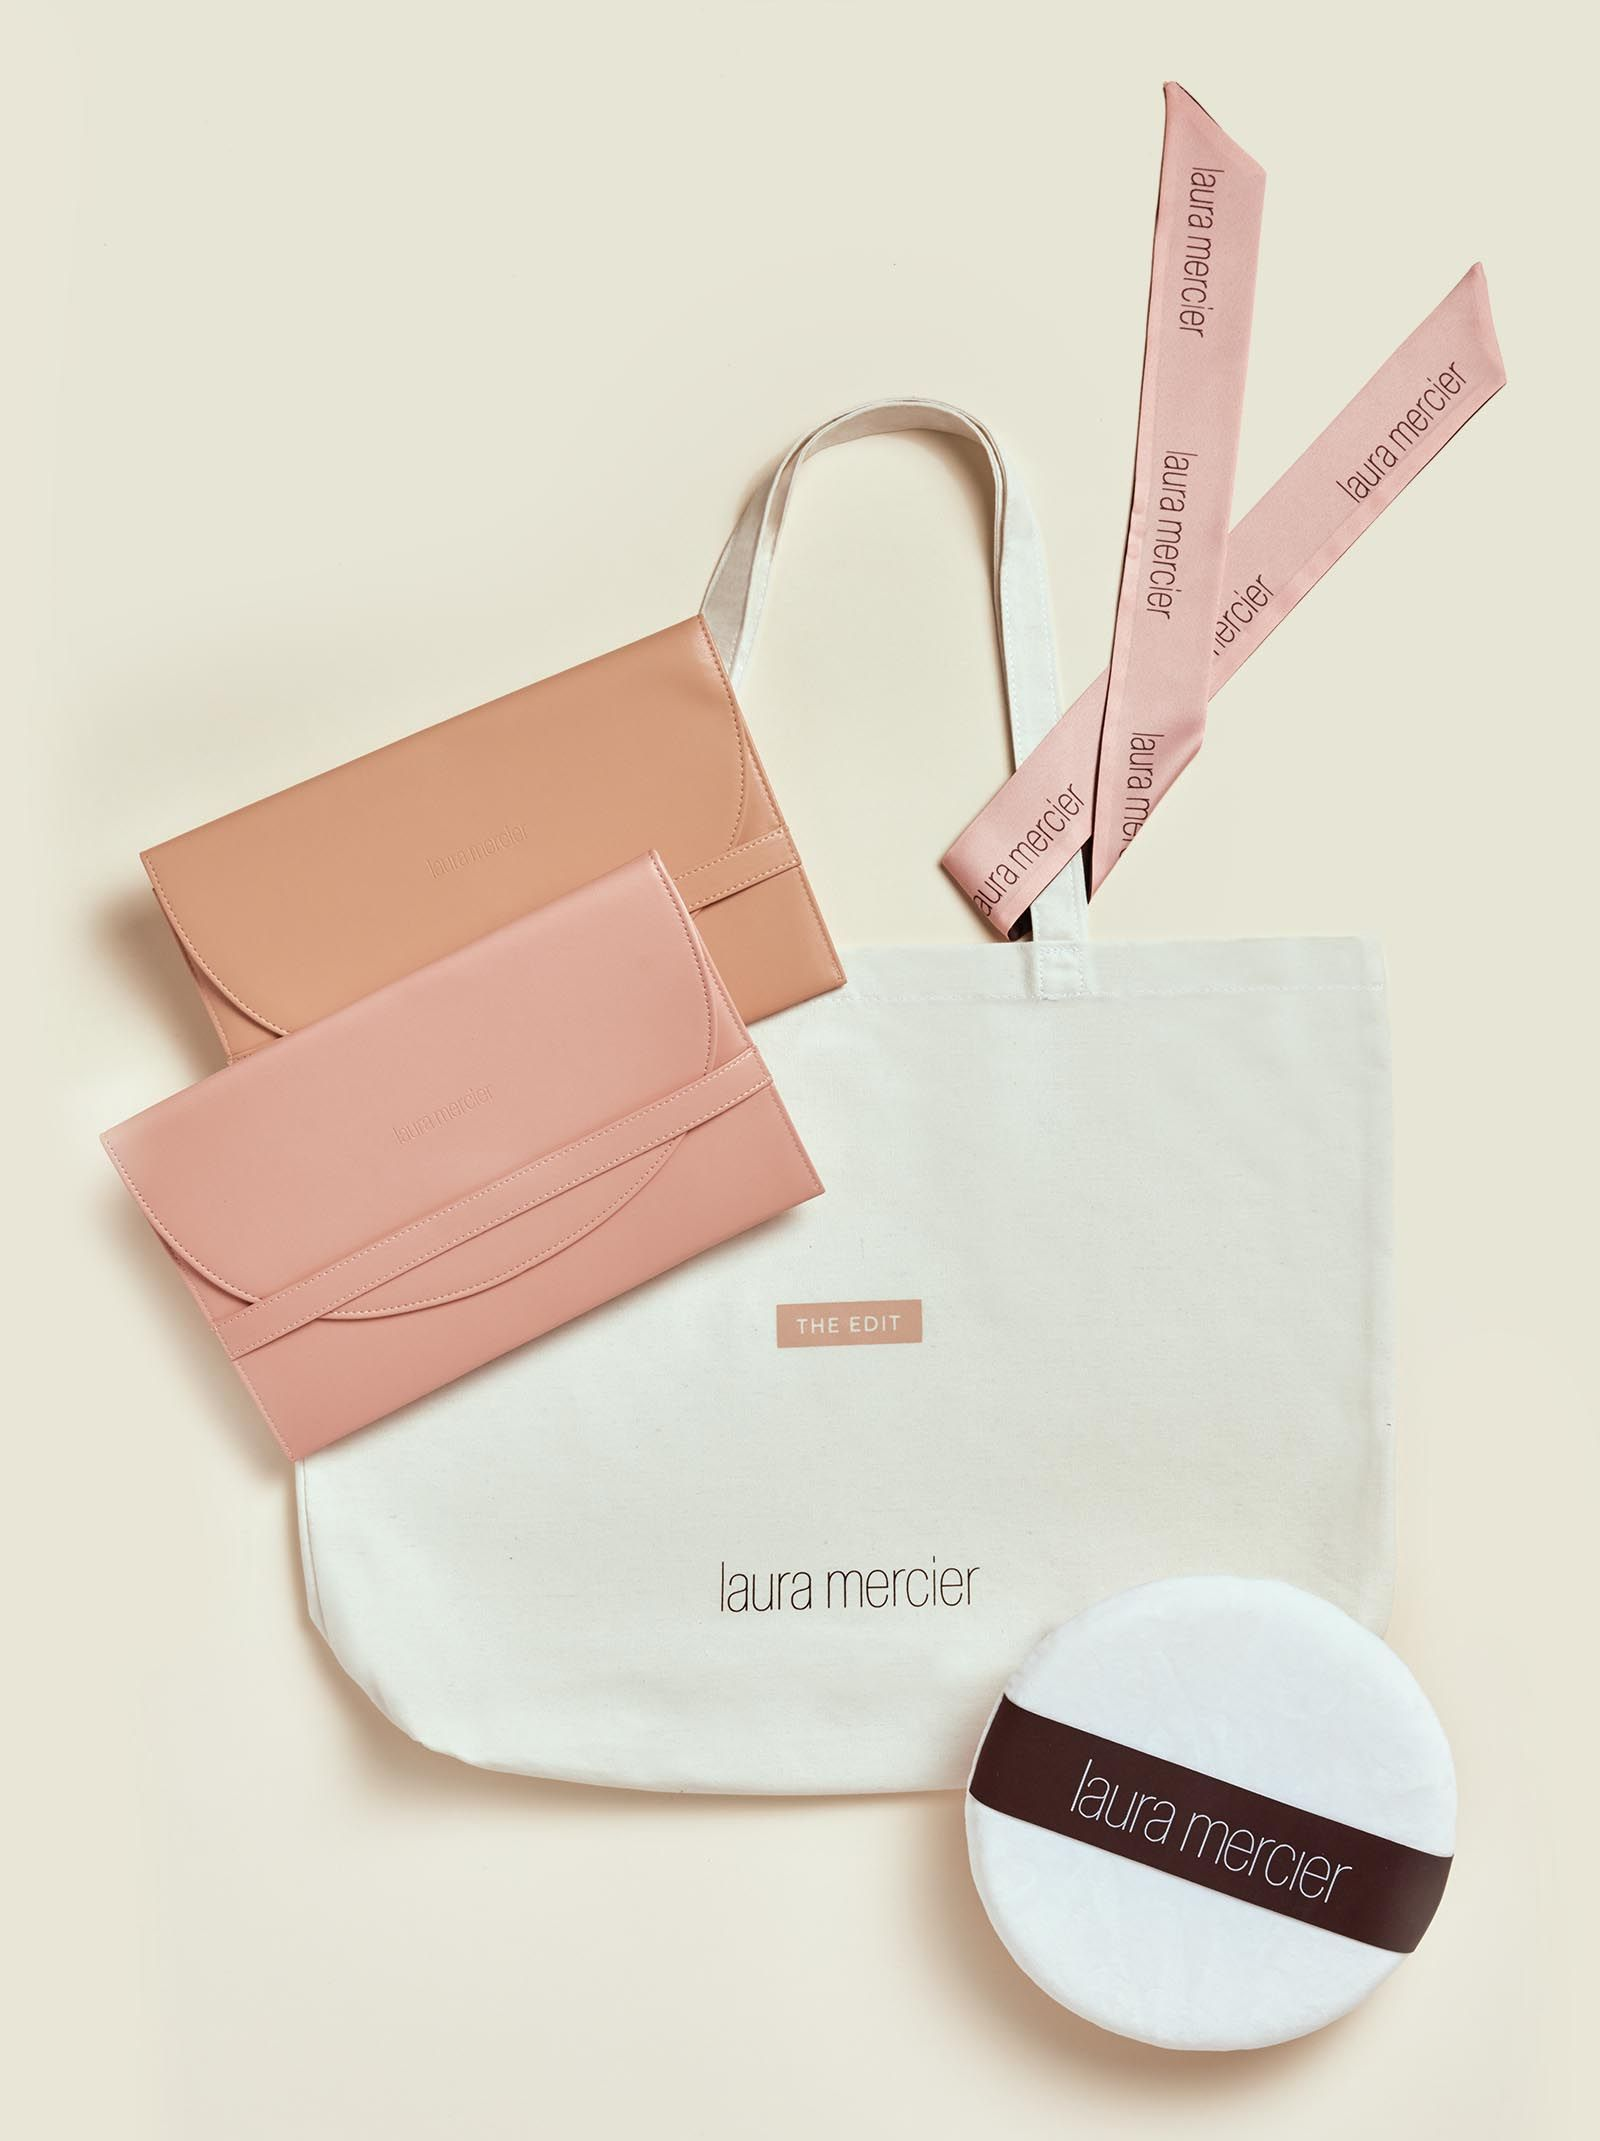 Tote bag with flat pouches and makeup pad